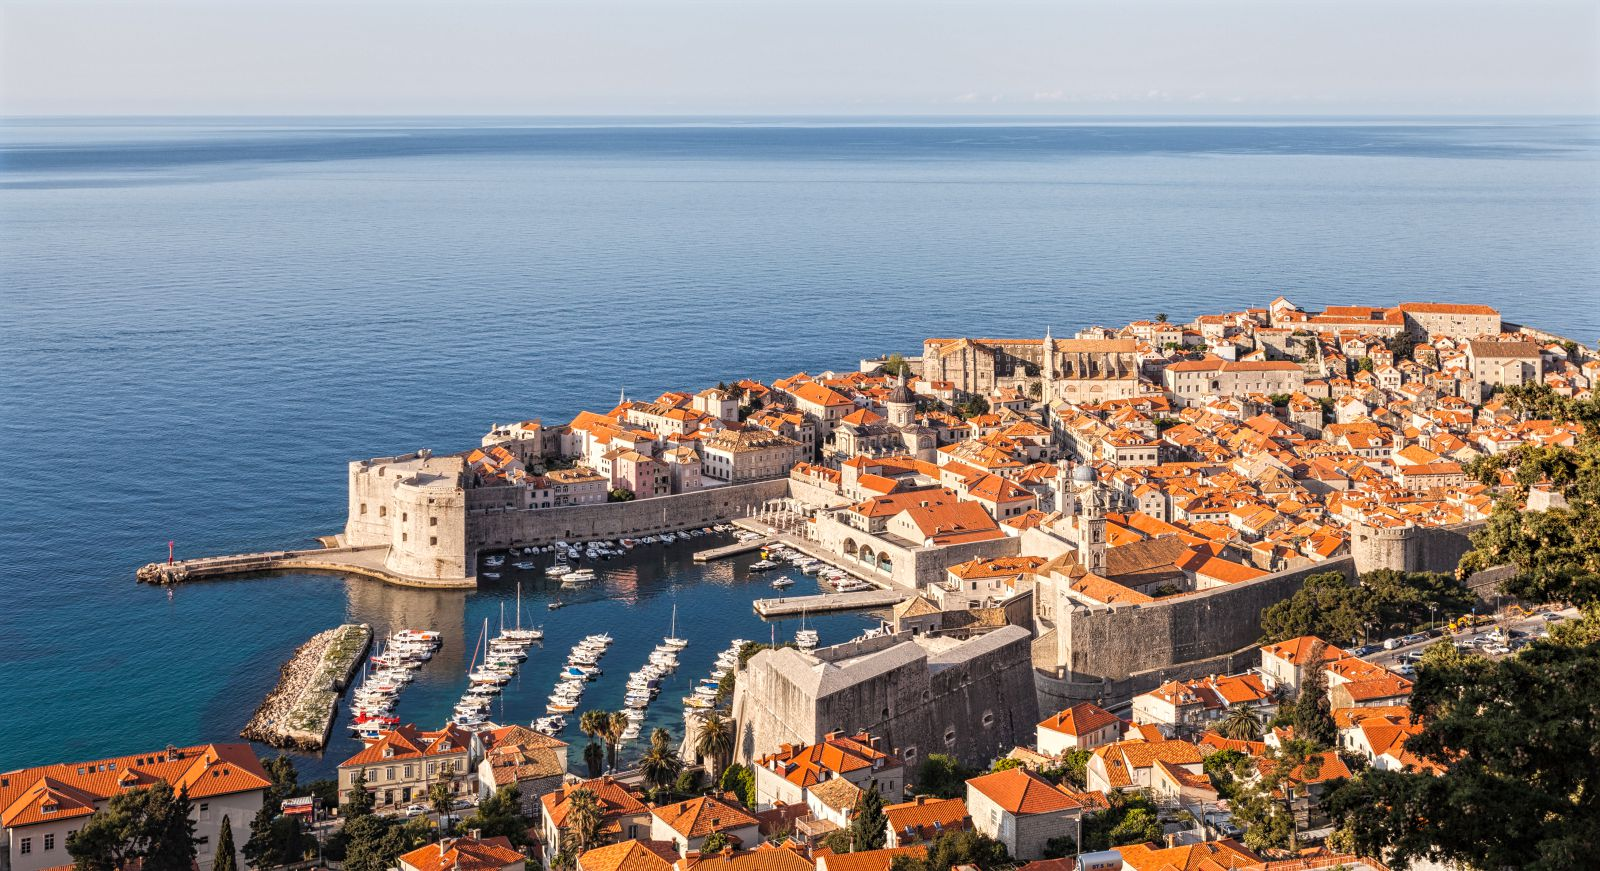 Discover dubrovnik old town guided walking tour -  385 98 28 36 37